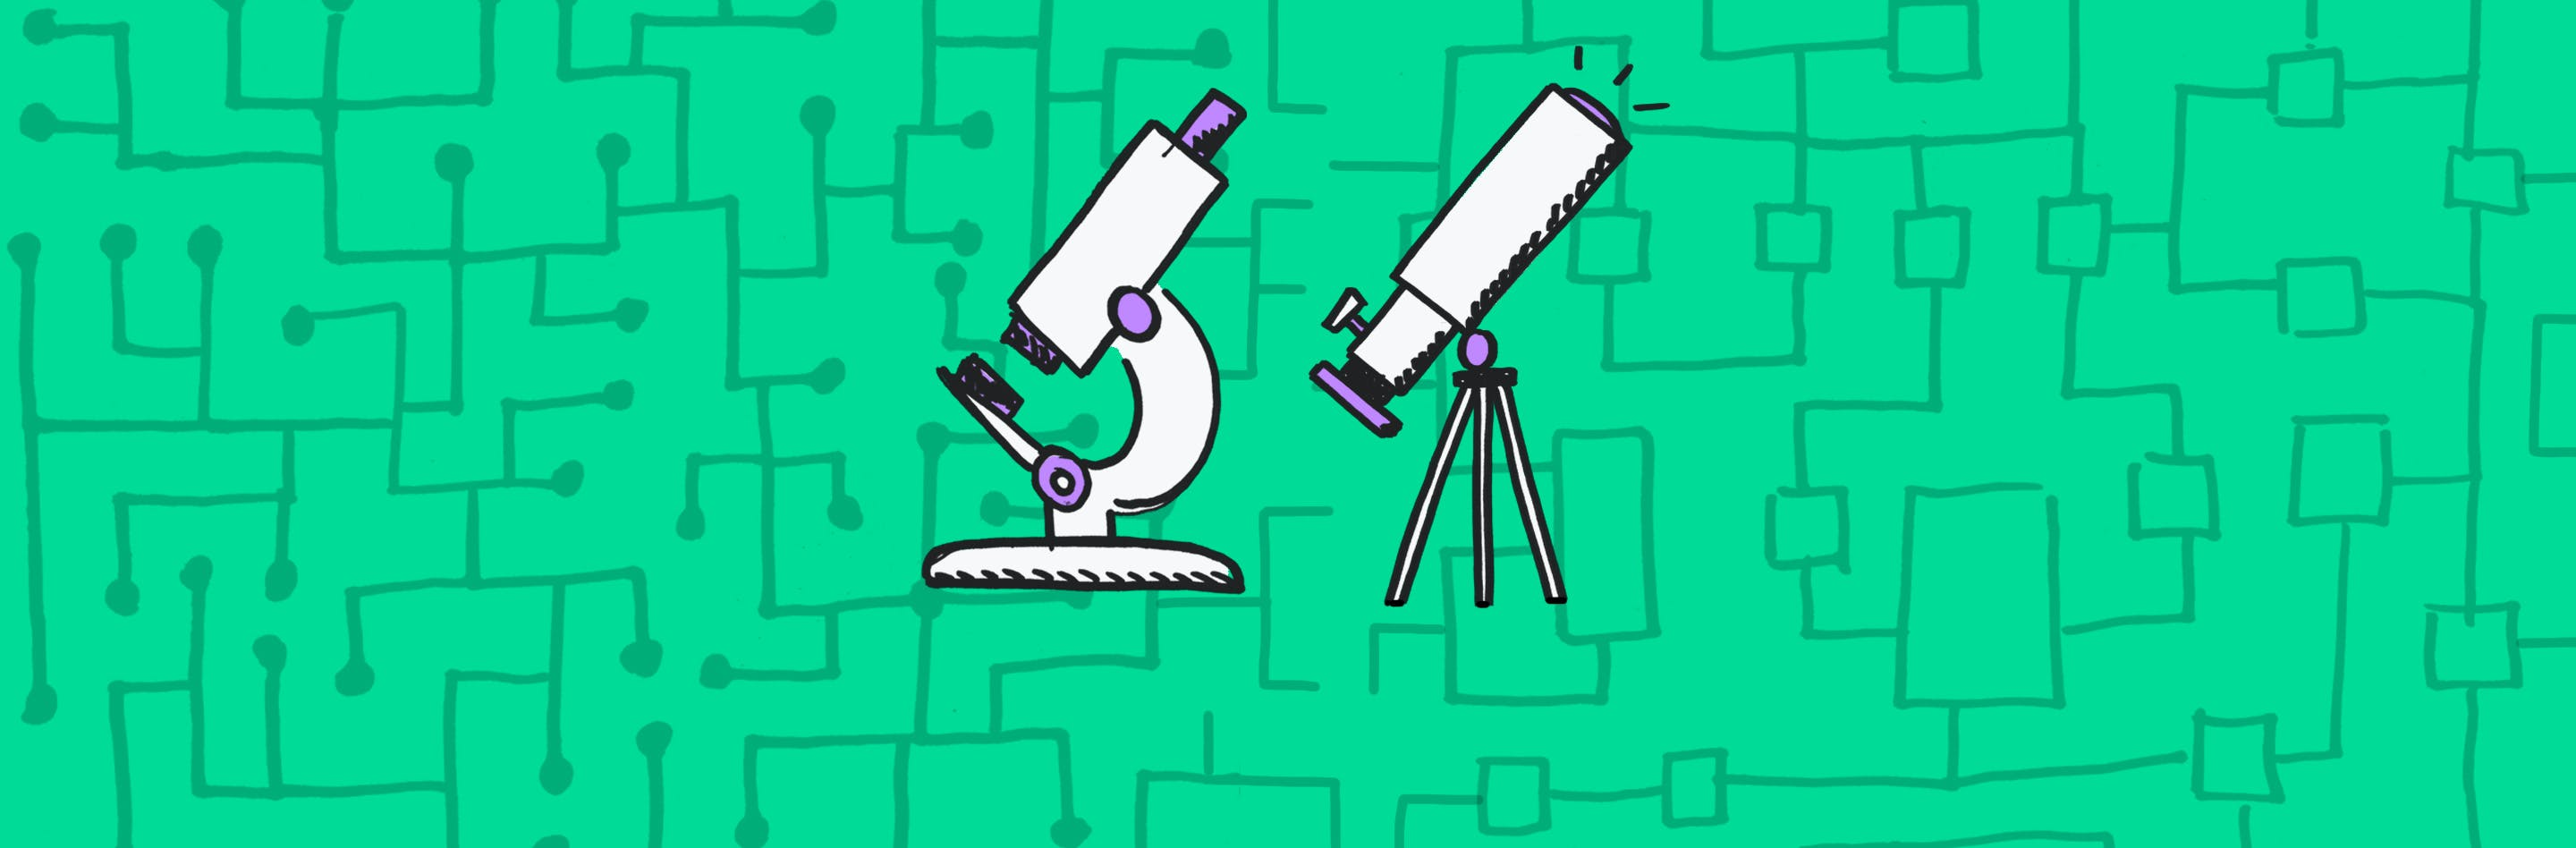 Illustrations of a telescope and microscope